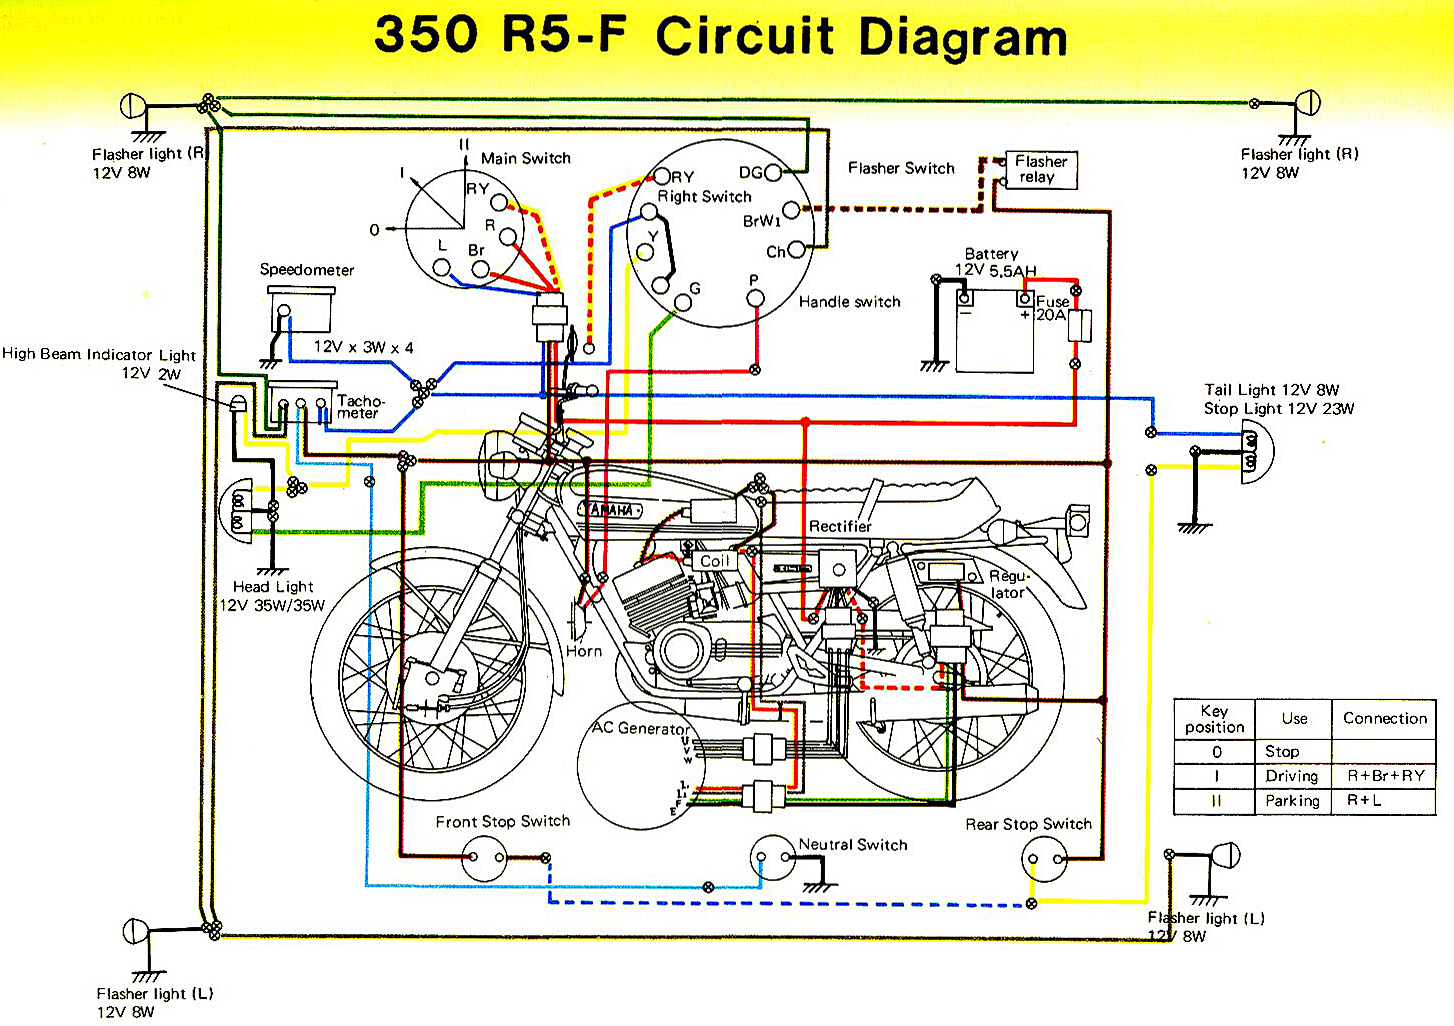 royal enfield bullet wiring diagram for nest thermostat 3rd generation yamaha r5 diagrams